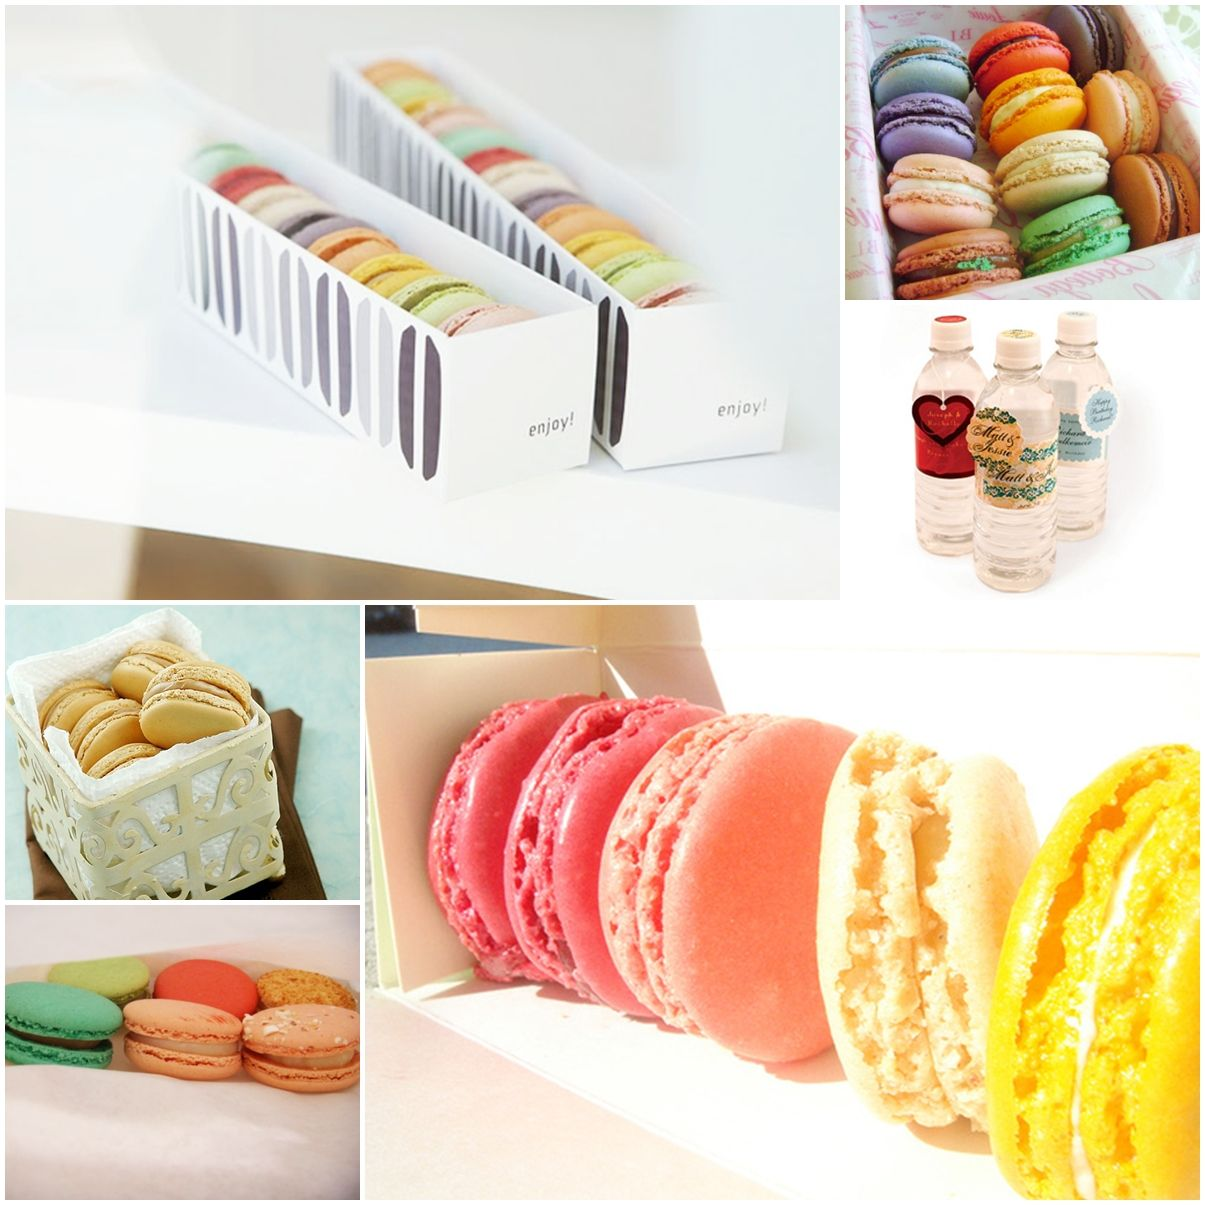 Lette macarons thank you nita for getting me hooked